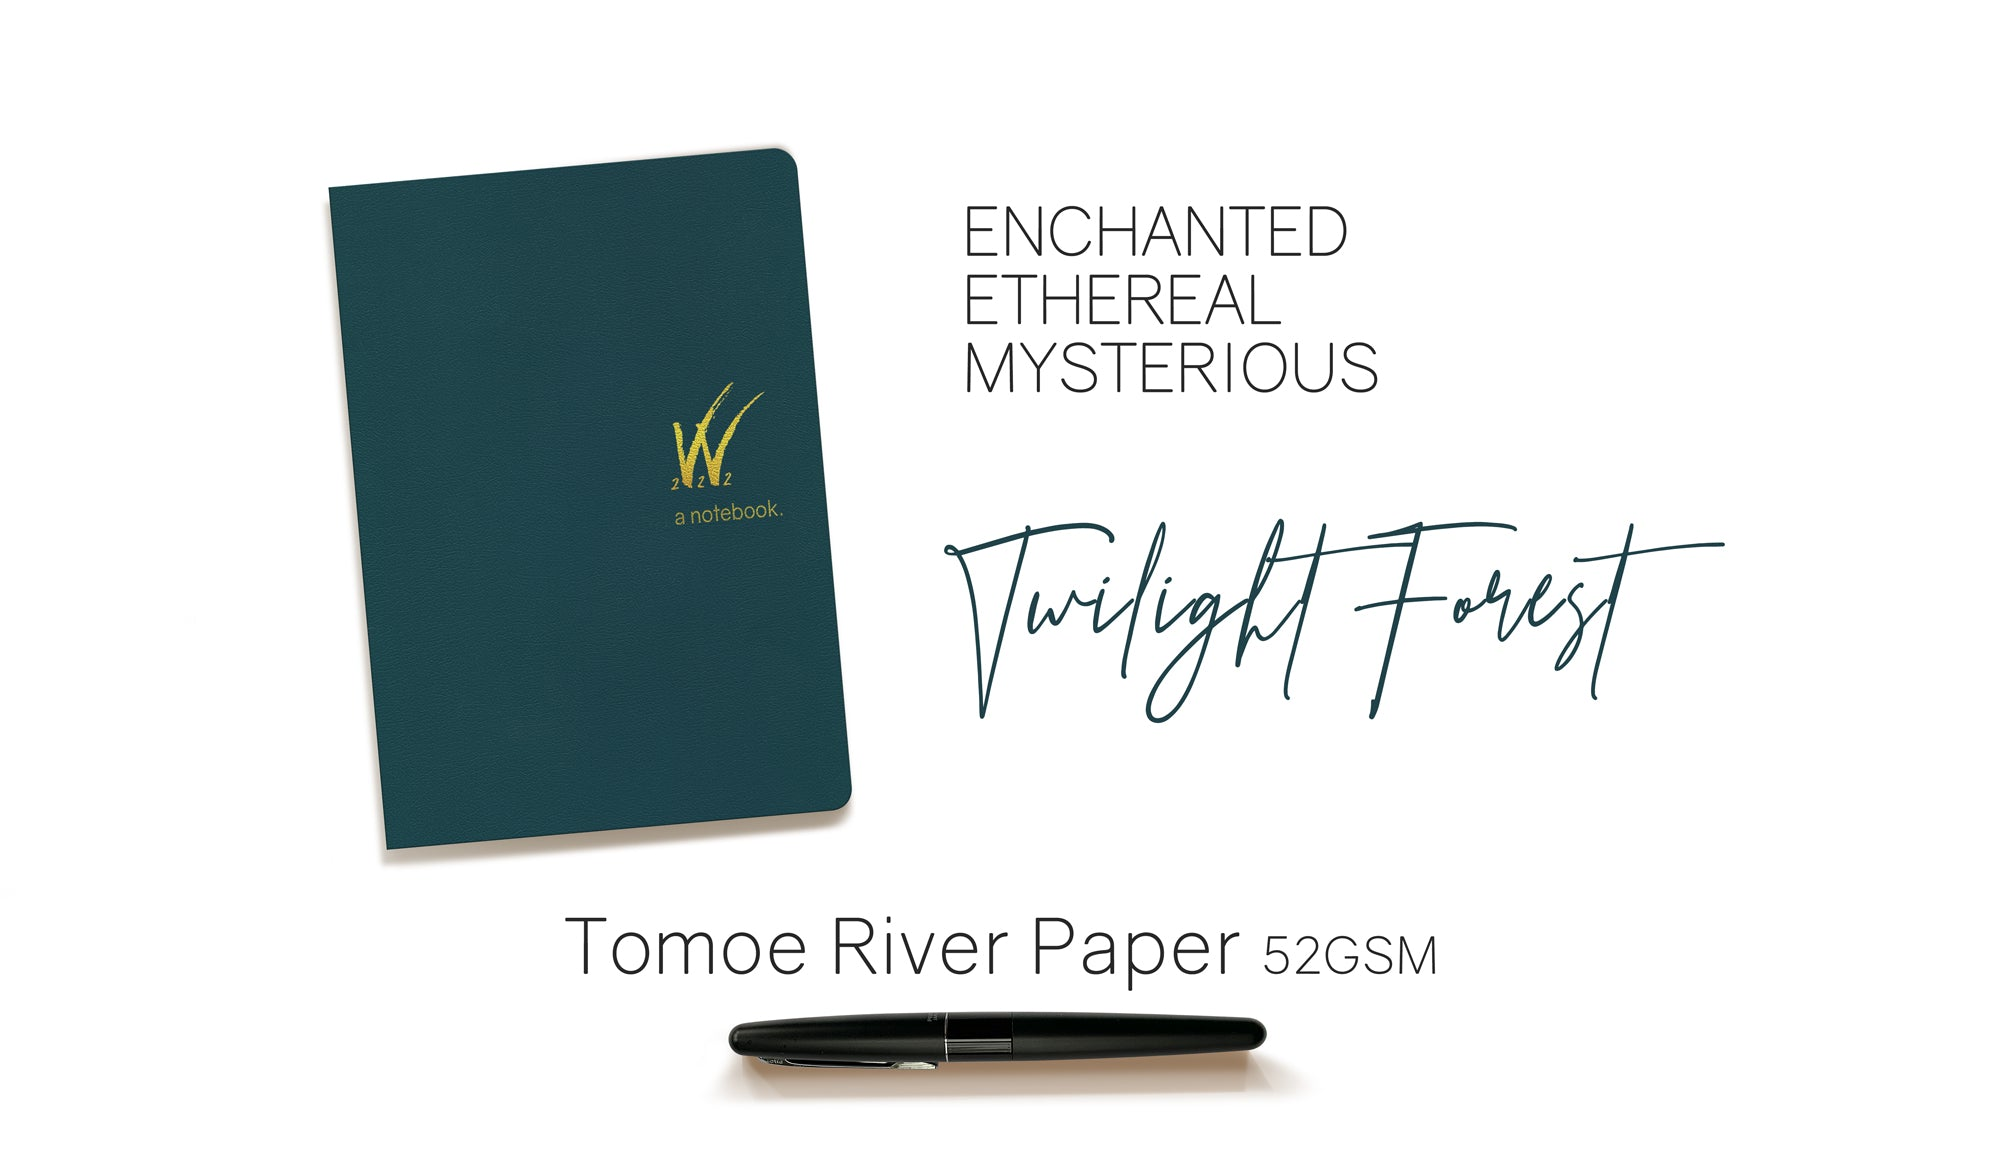 B6 52gsm Tomoe River Paper Notebook with teal cover by Wonderland 222.  368 pages of smooth, ultra lightweight fountain pen friendly Tomoe River Paper.